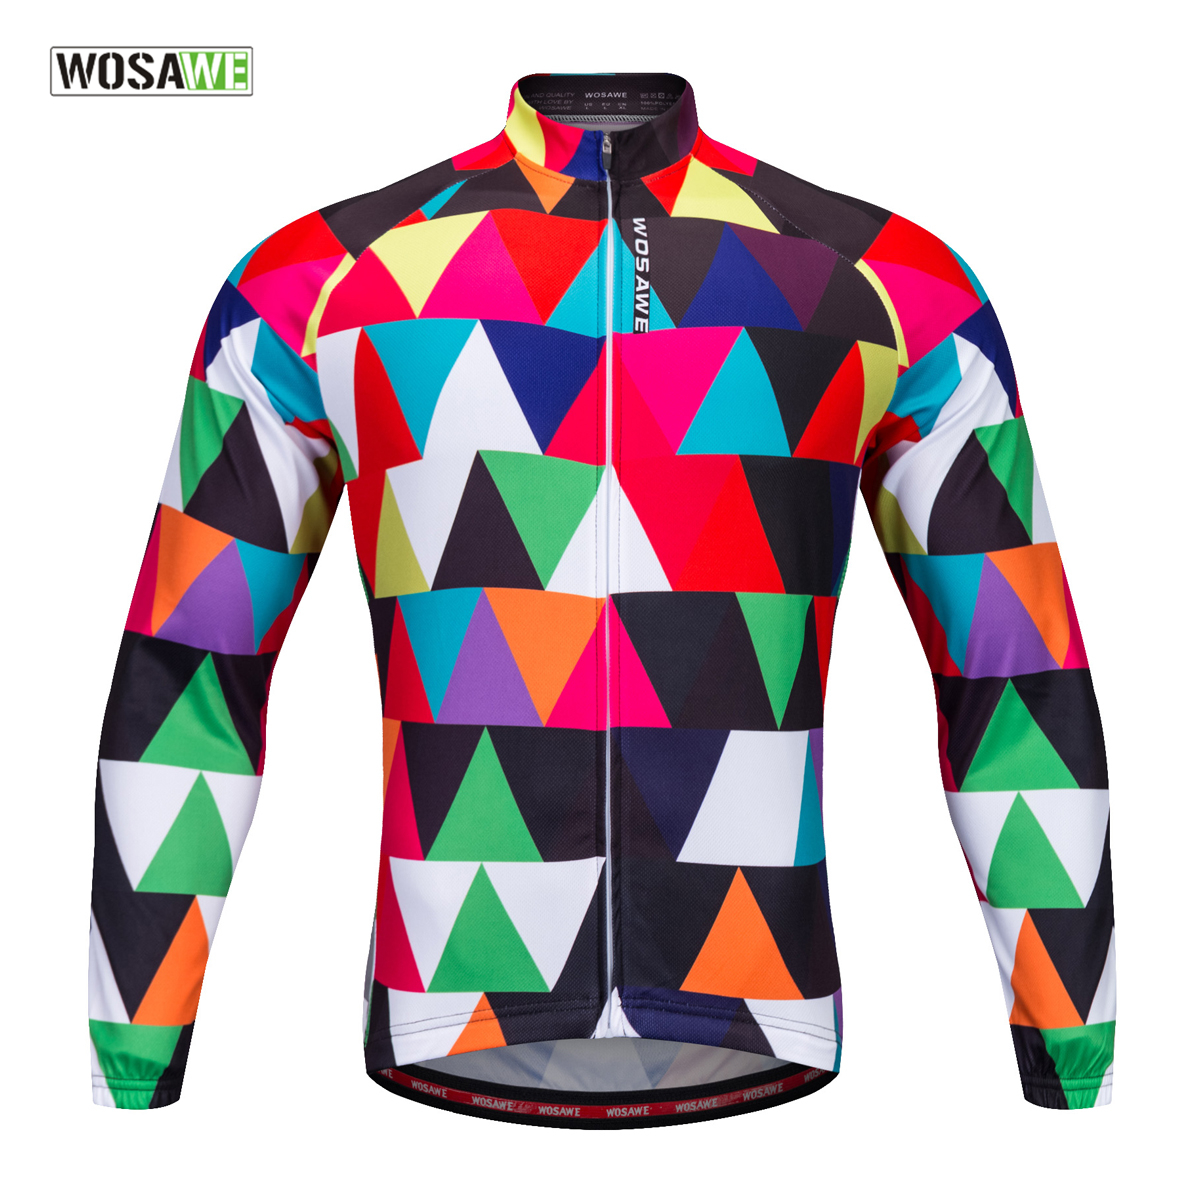 WOSAWE Long Sleeve Cycling Jersey 100%Polyester Outdoor Sports Bike Clothing Ropa Ciclismo DH Spring/Autumn Wear Bike Jerseys 2017 spring summer cycling jersey women long sleeve mountain biking jerseys shirt outdoor sports clothing ropa ciclismo santic